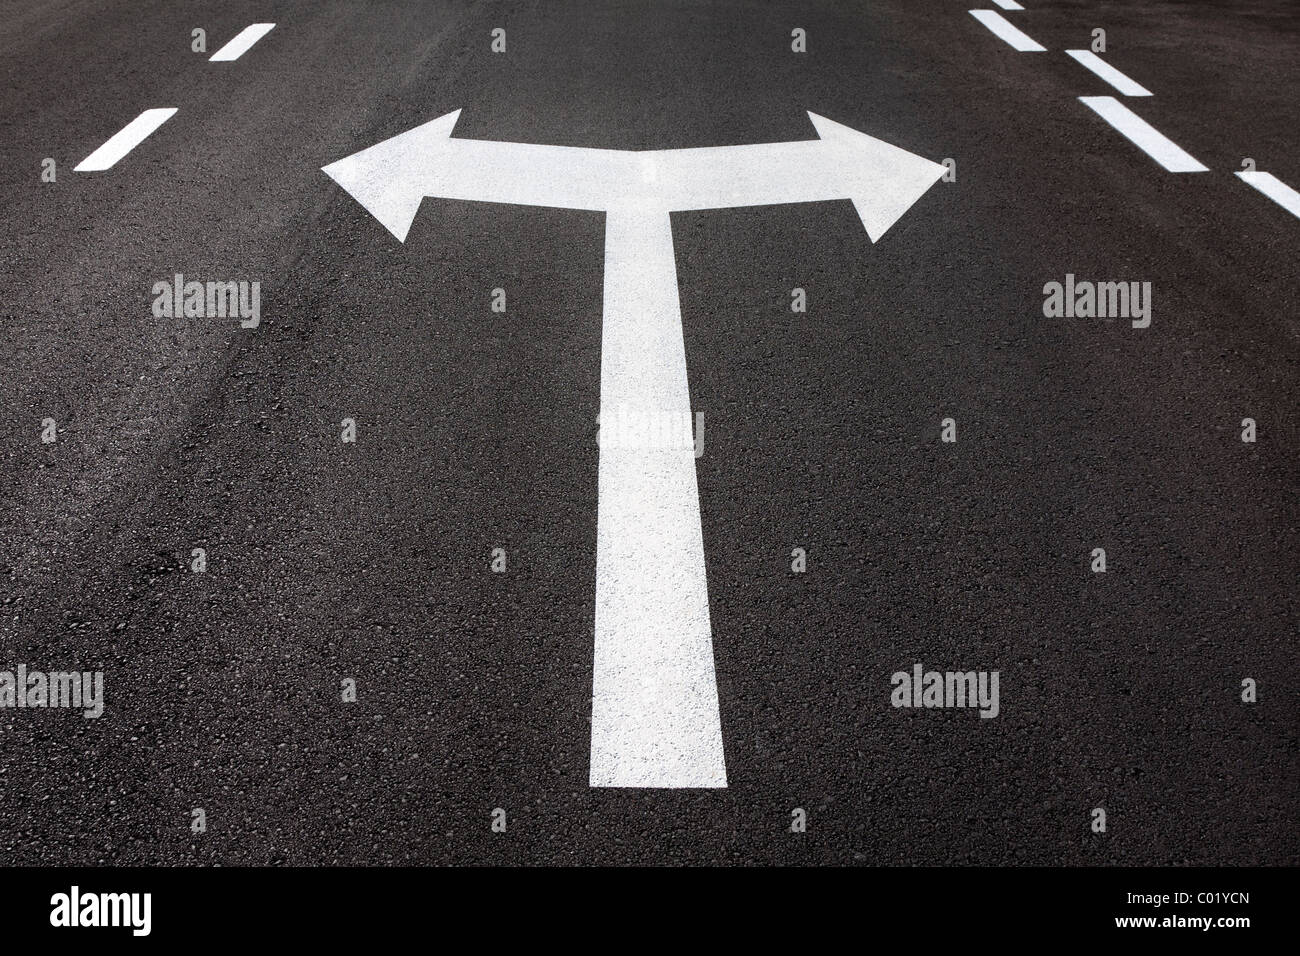 Left and right turn arrows painted on tarmac roadway. Concept for turning, decision, choice, which way, right, left. - Stock Image